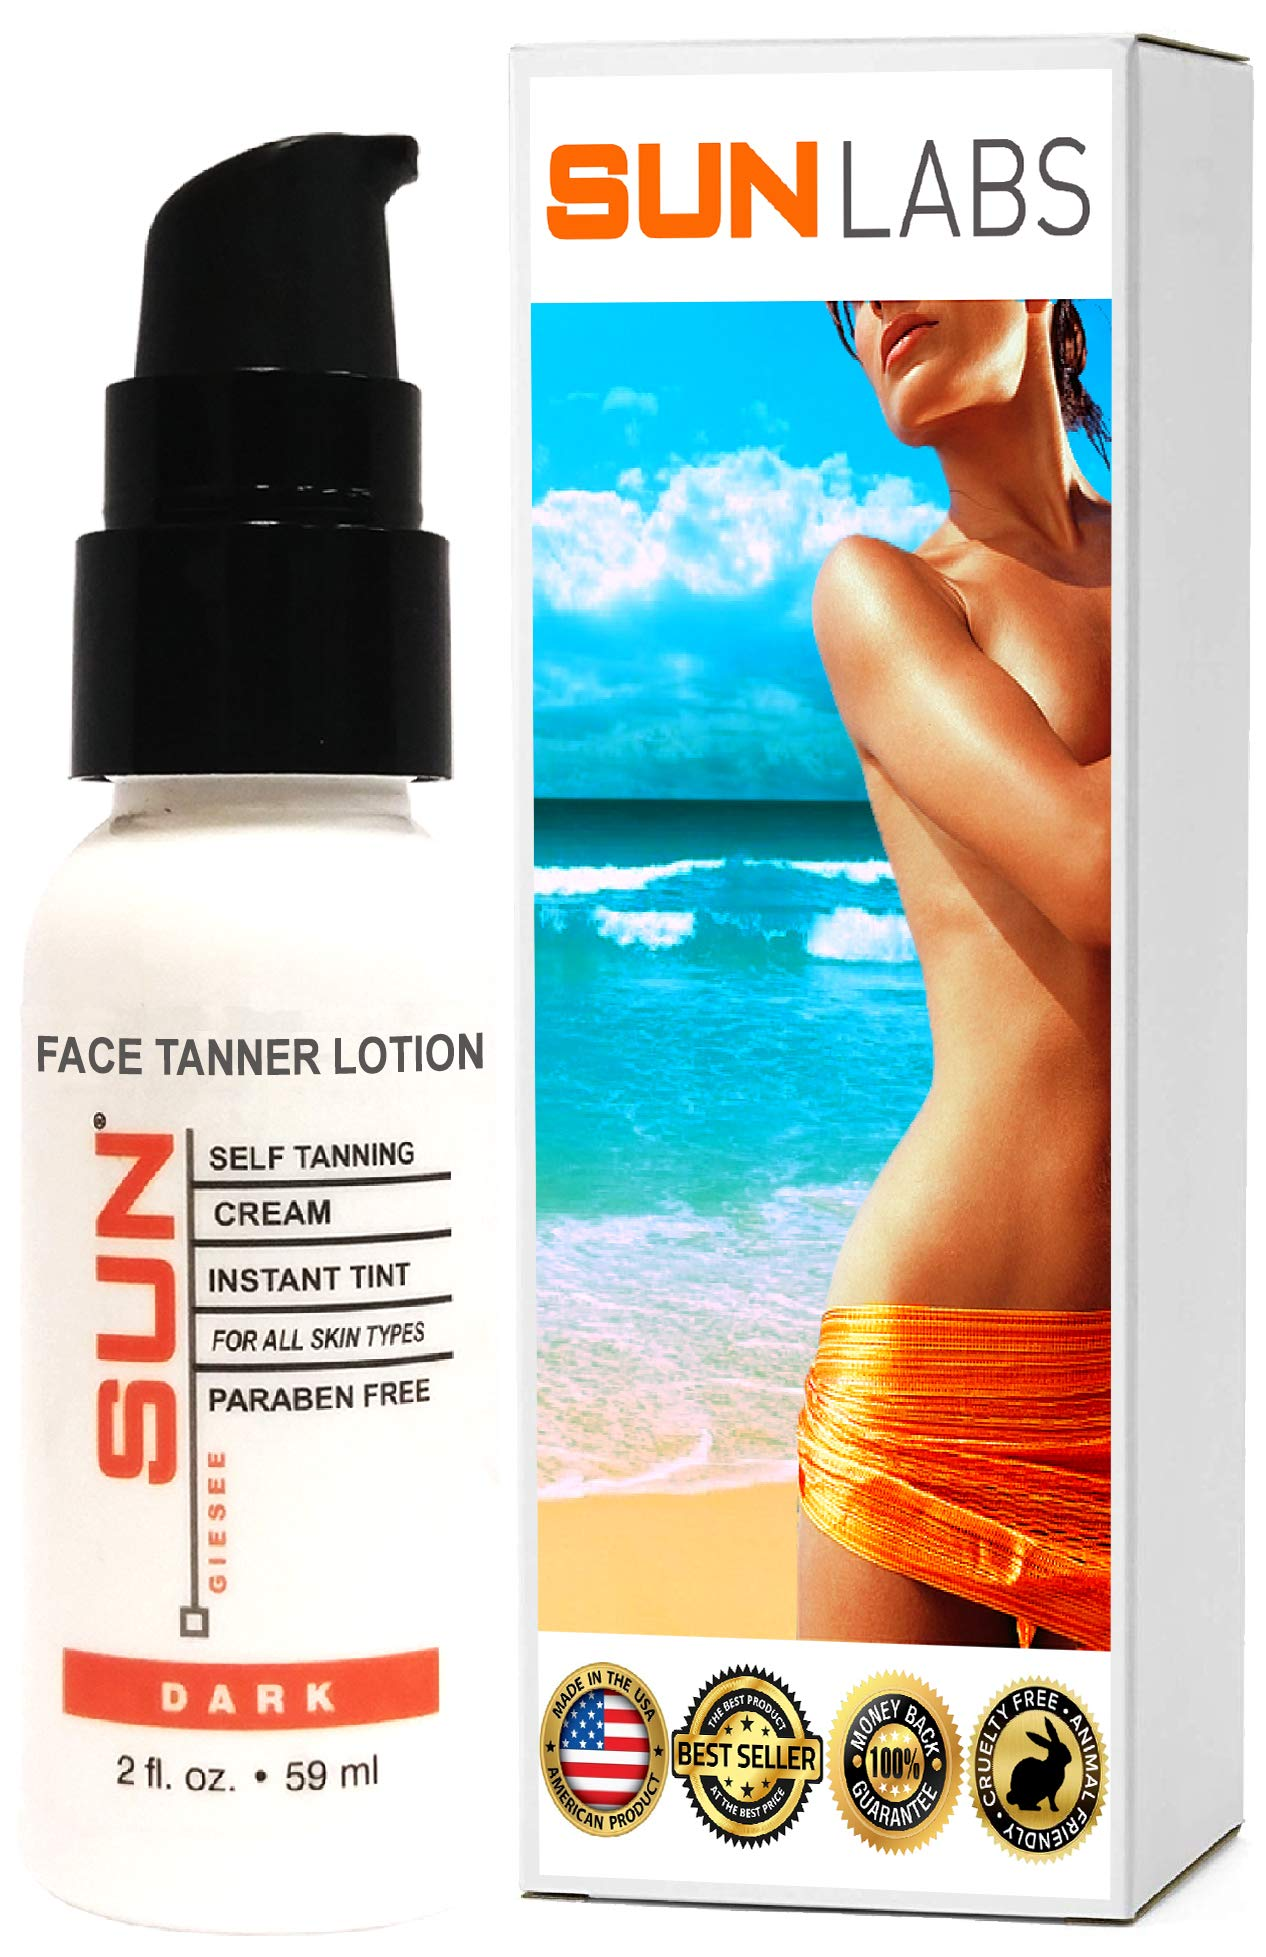 Face Tanner Travel Size Self Tanner Moisturizer for Face 2 oz Face Serum Tanning Lotion Face moisturizer Indoor Tanning lotion